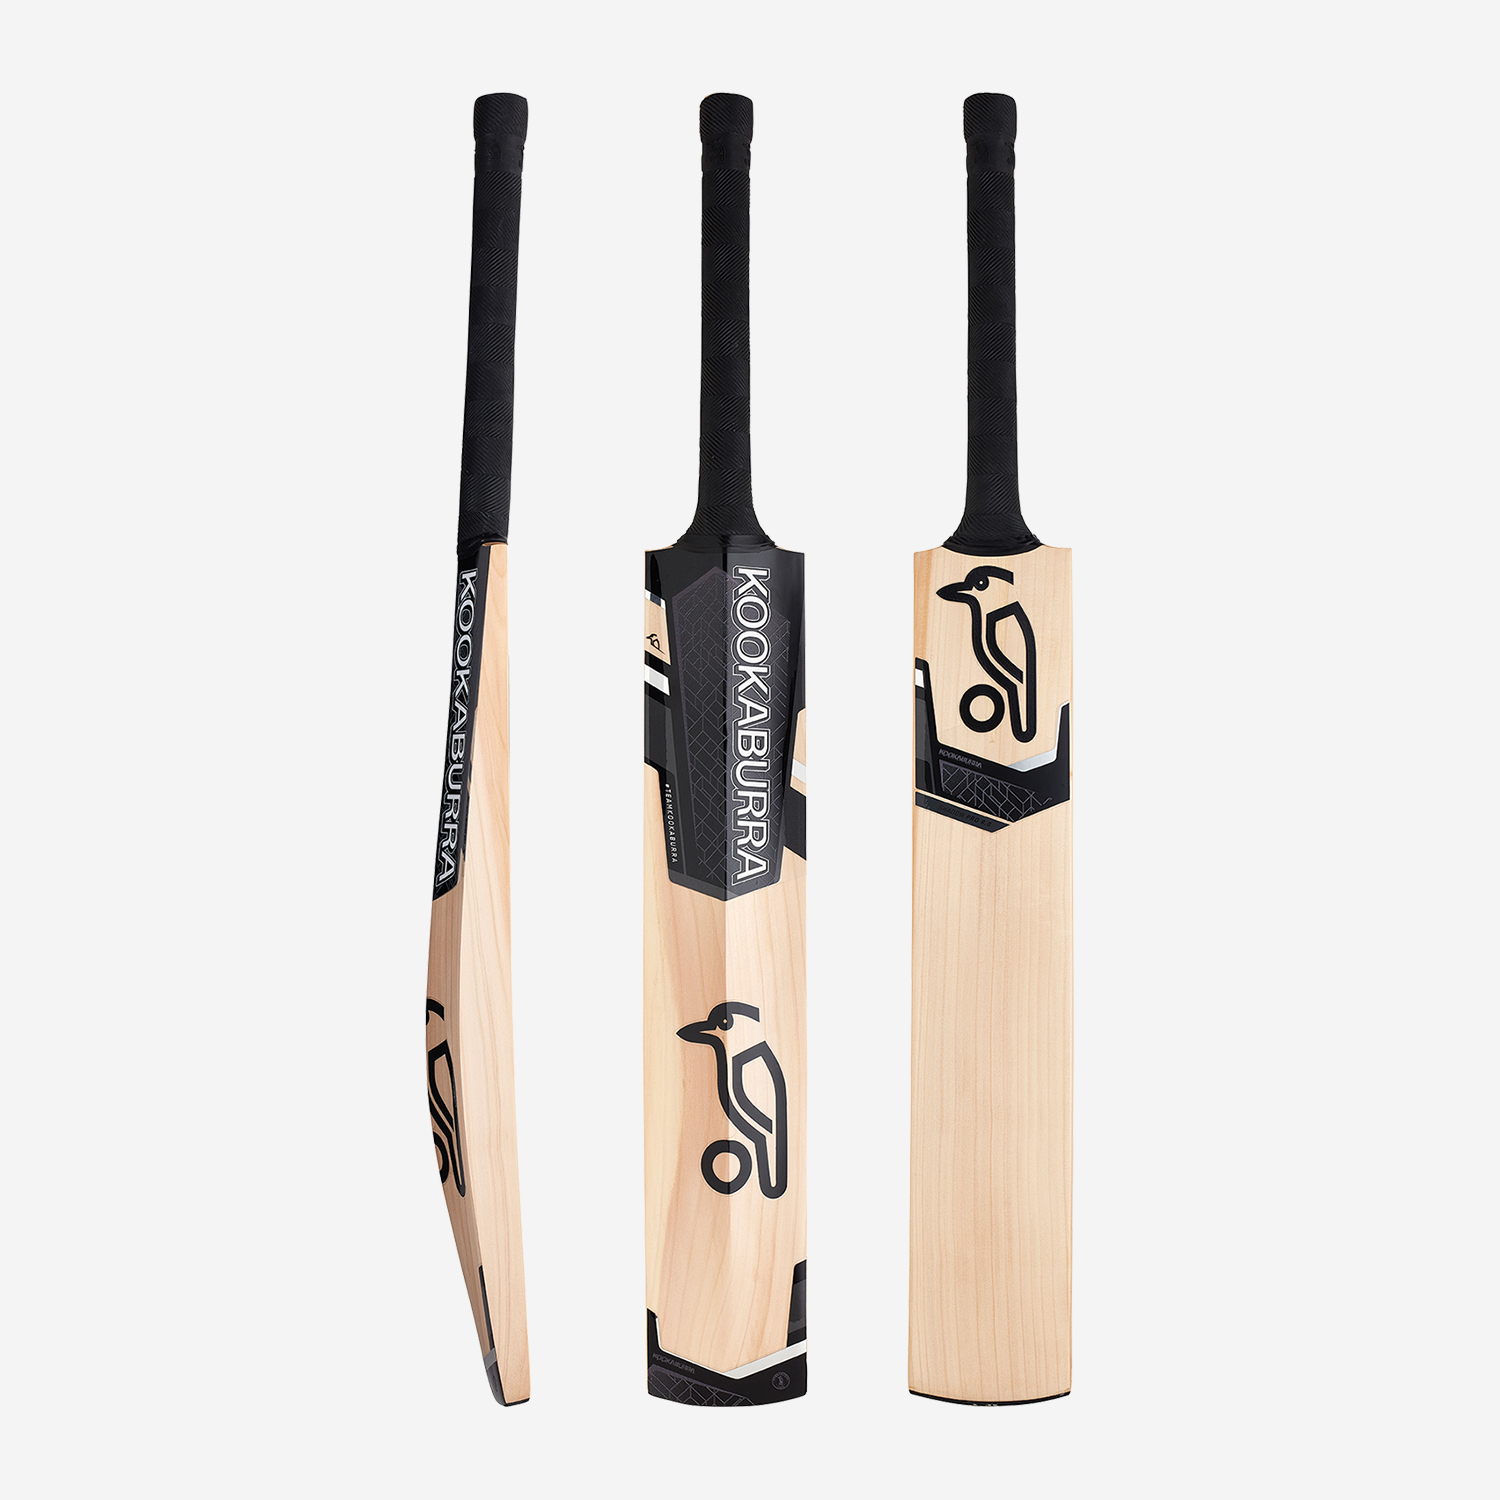 Shadow Pro 8.0 Cricket Bat